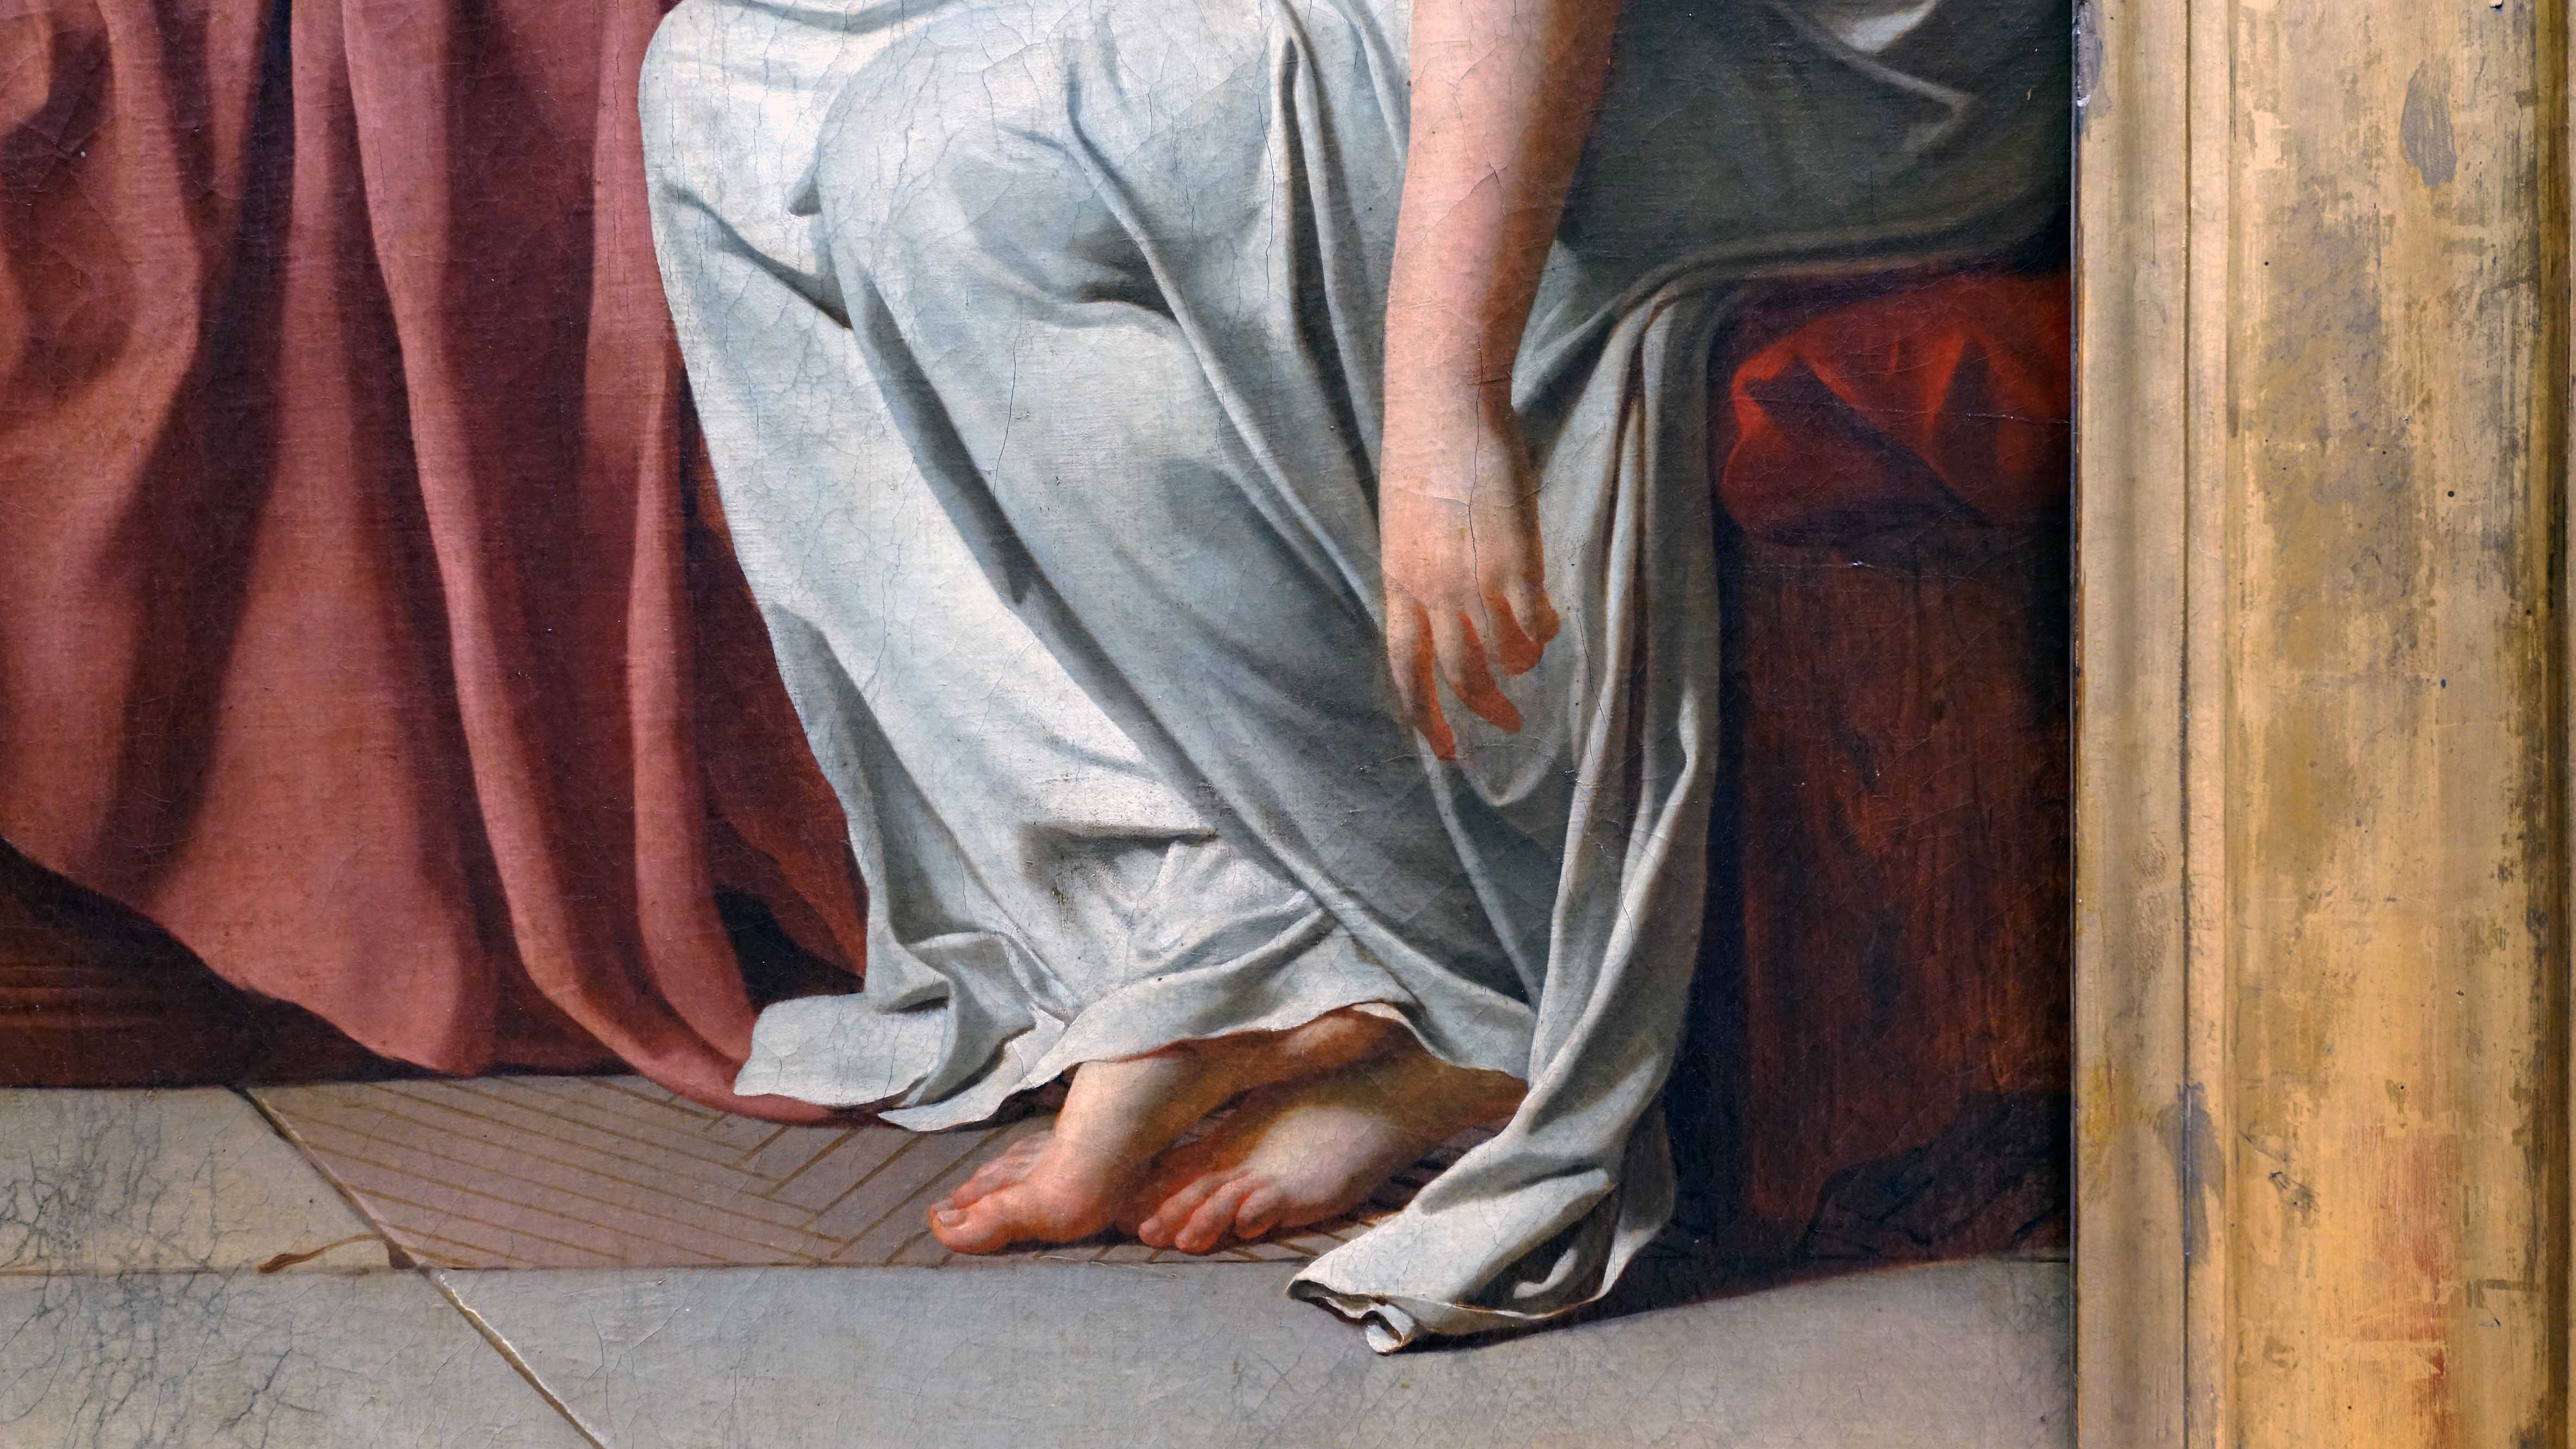 Hand Detail Jacques Louis David Oath Of The Horatii Oil On Canvas 3 3 X 4 25m Commissioned By Louis Xvi Painted In Rome Exhibited At The Salon Of